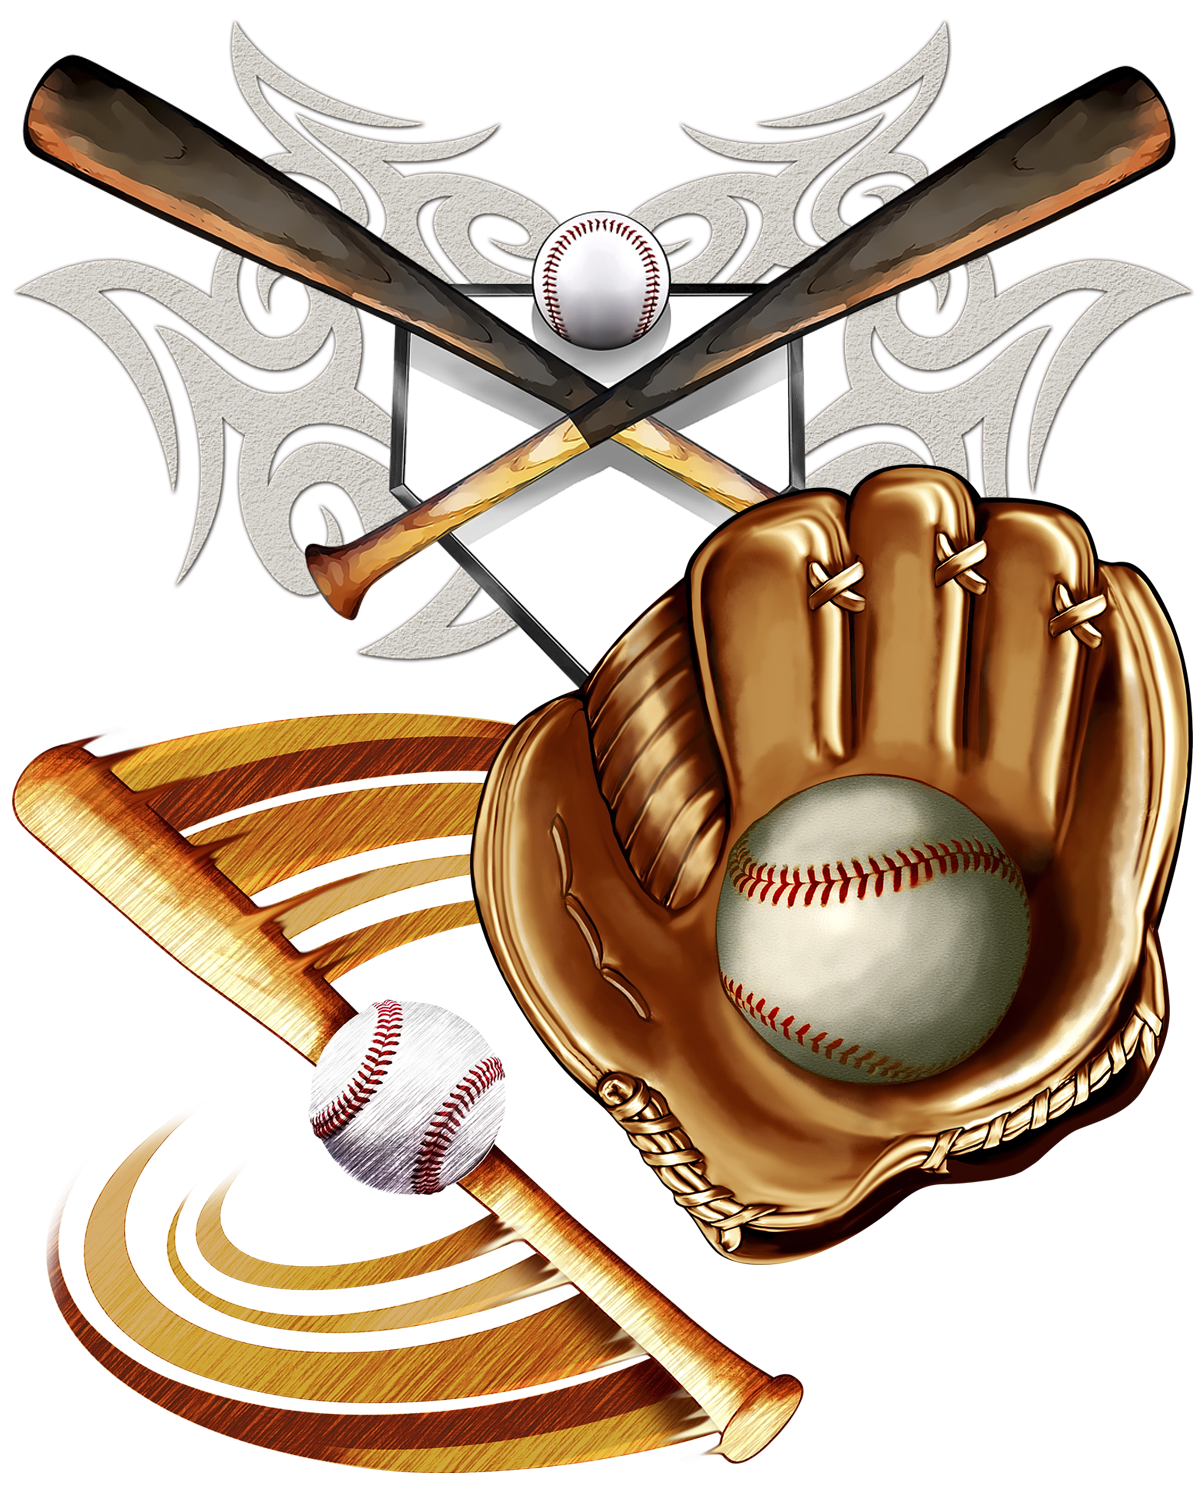 Baseball first plate clipart svg freeuse download Great Dane Graphics Offers New Baseball Designs - July 31, 2018 svg freeuse download